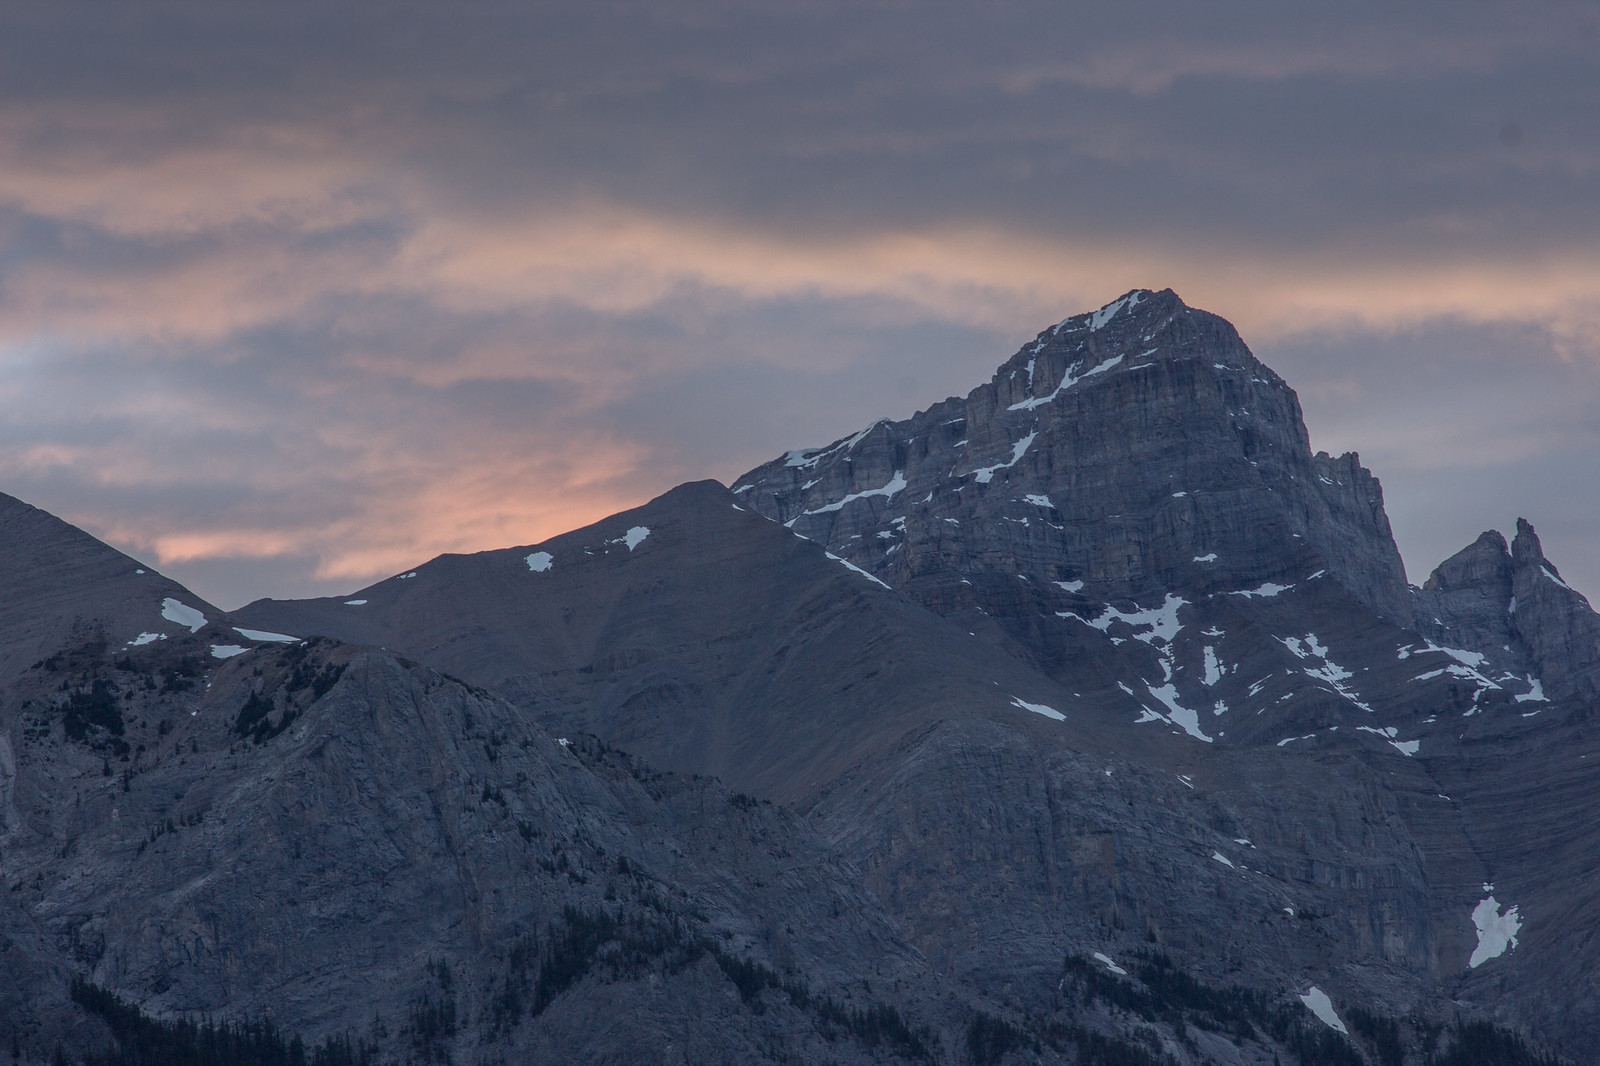 Pink clouds at sunset over Mount Rundle